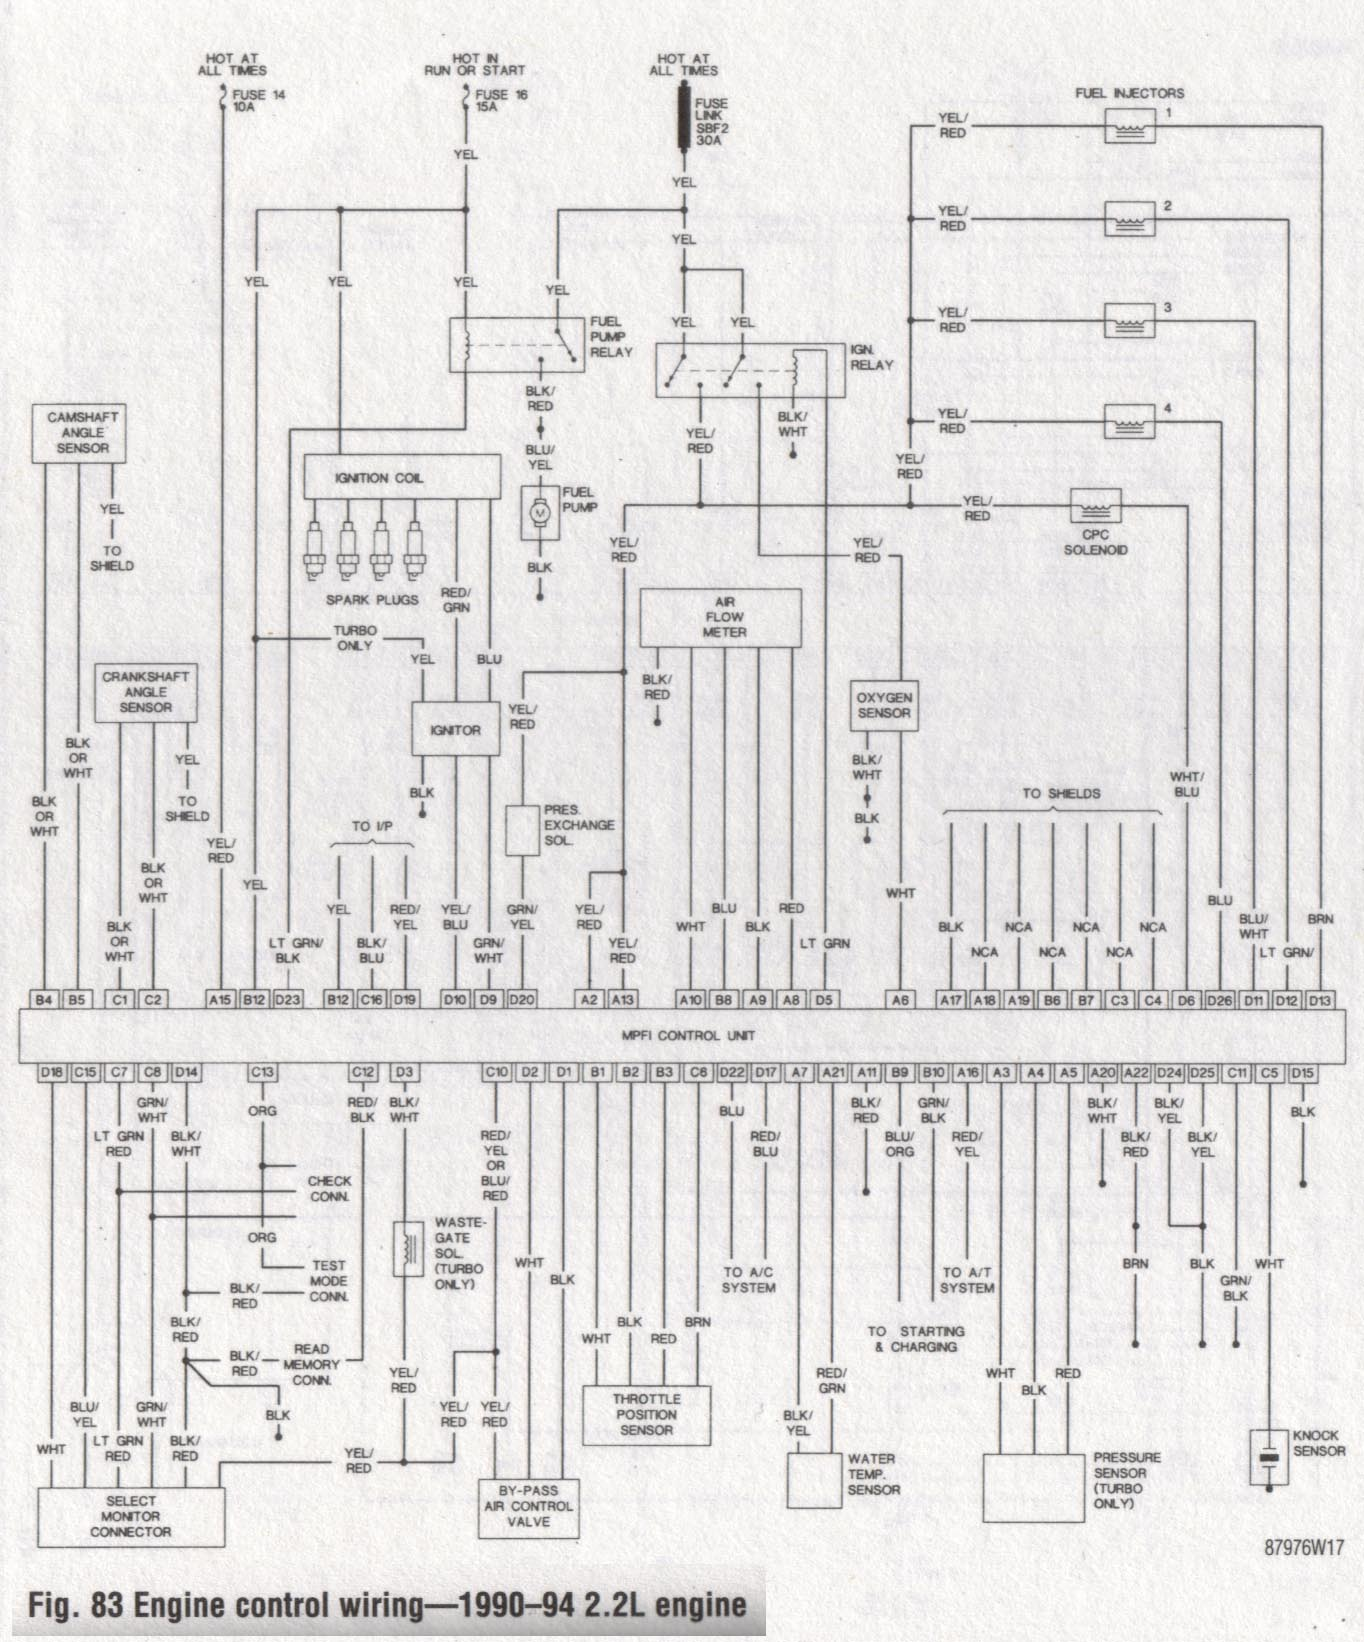 Subaru Forester Wiring Harness Diagram